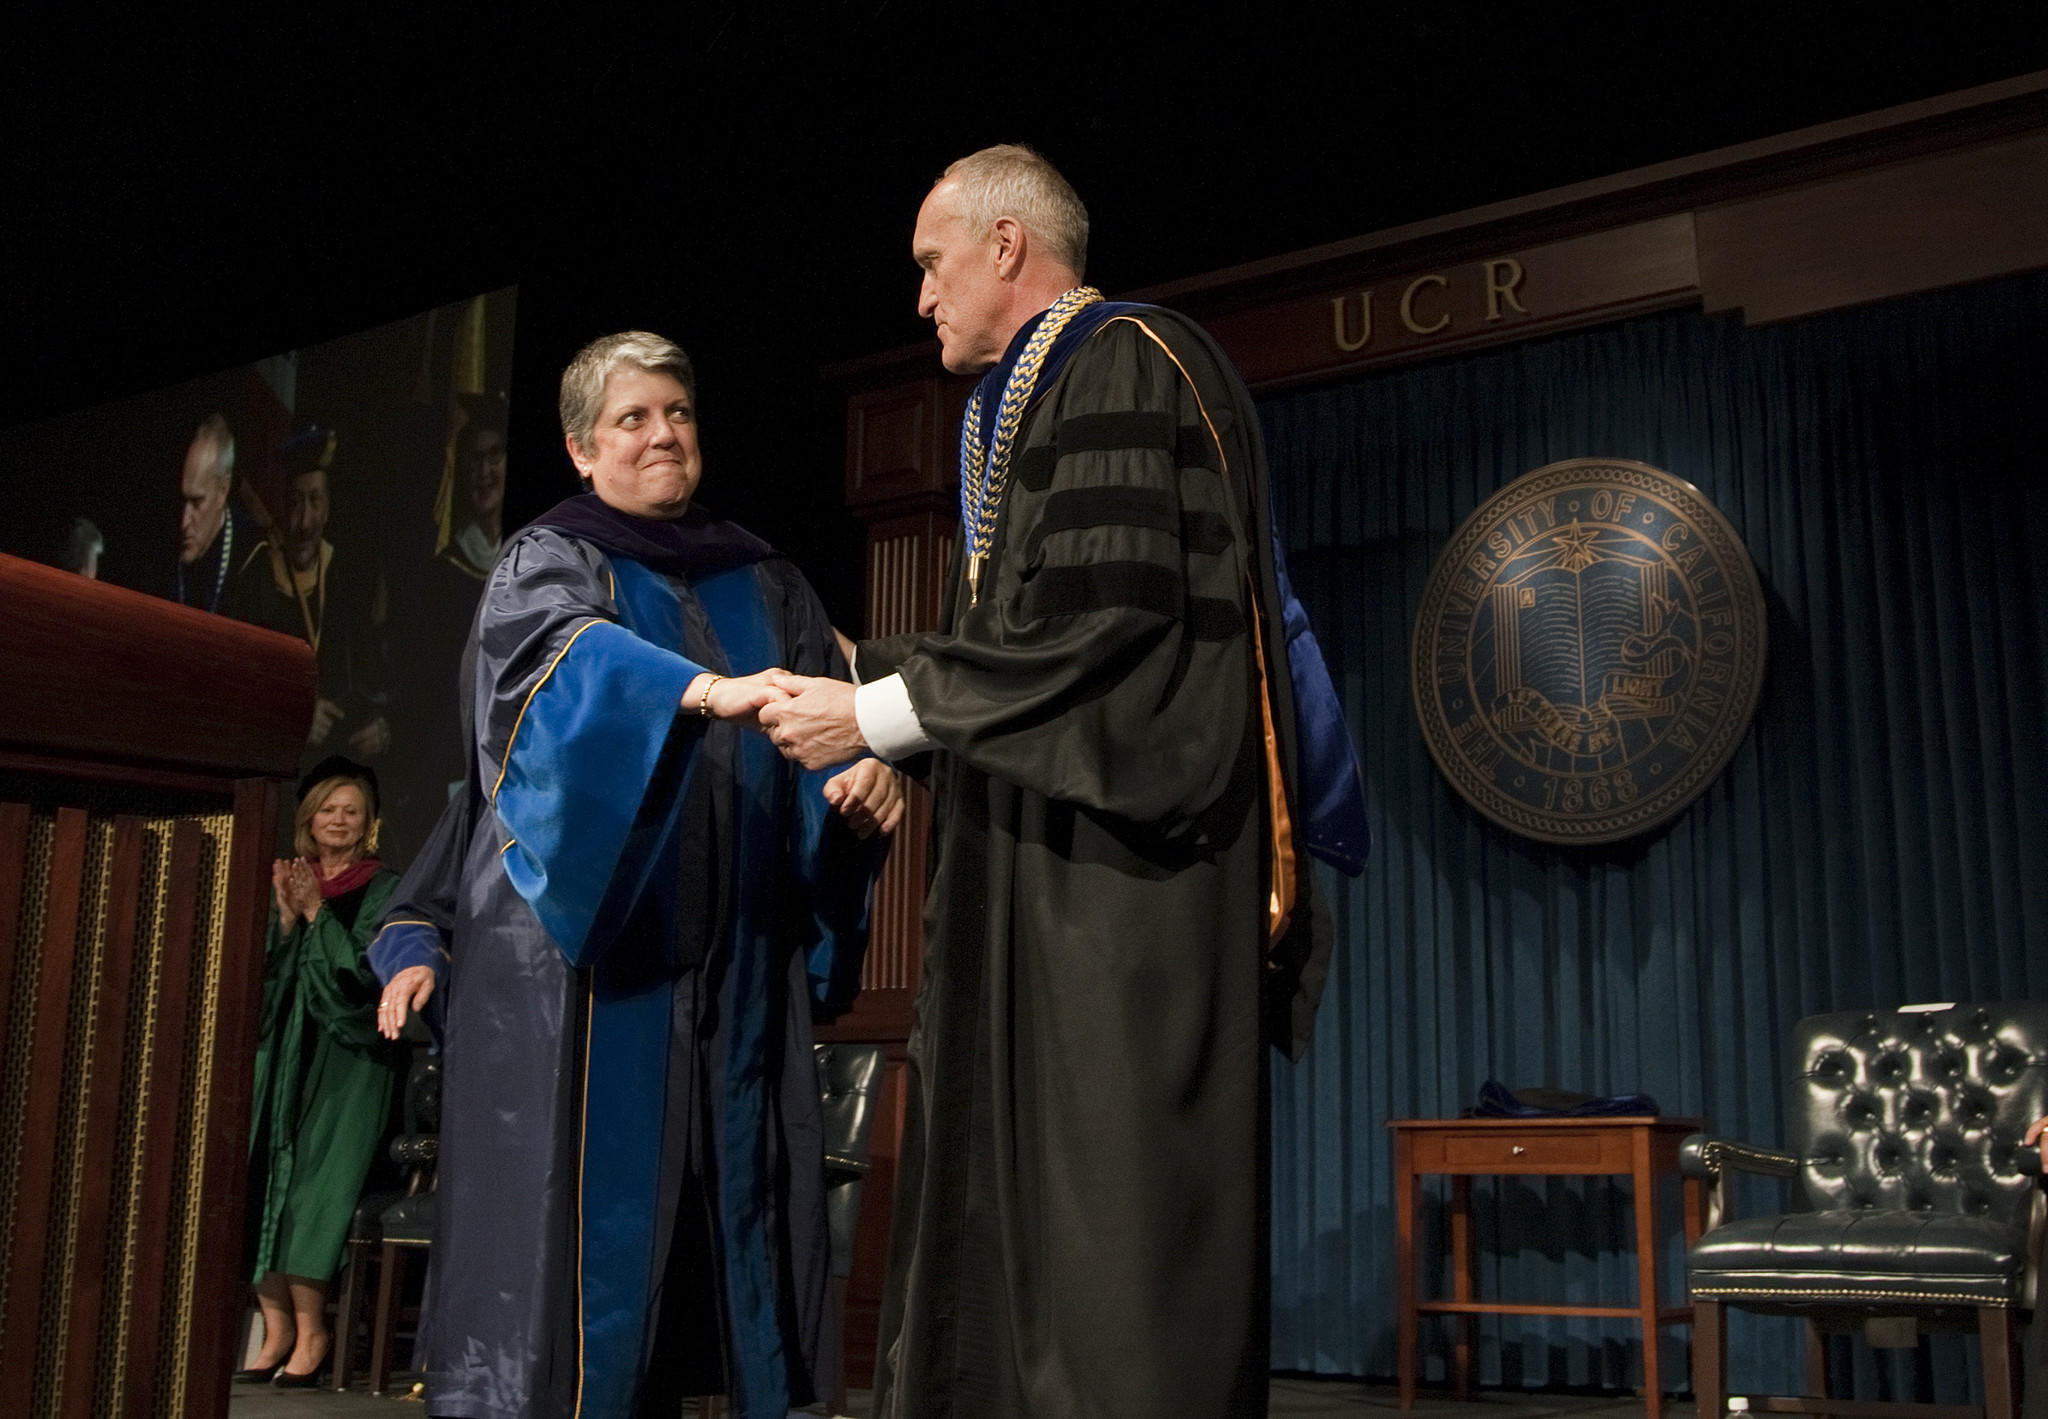 University of California President Janet Napolitano, left, congratulates new UC Riverside Chancellor Kim Wilcox at his investiture ceremony.